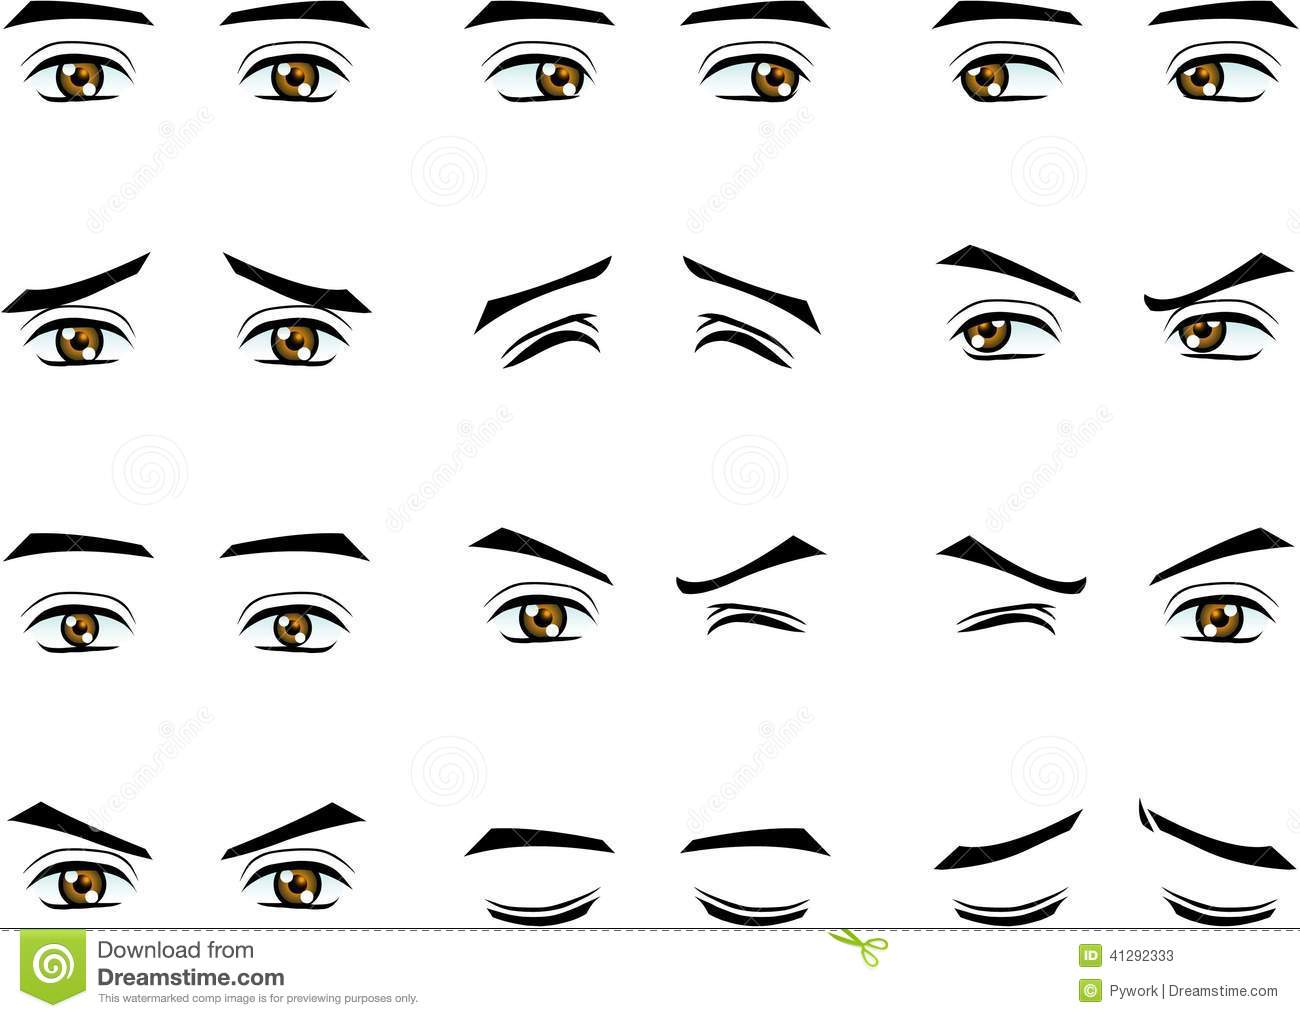 Groovy Yoworld Forums View Topic So That39S It Then No Animated Eyes Hairstyles For Men Maxibearus